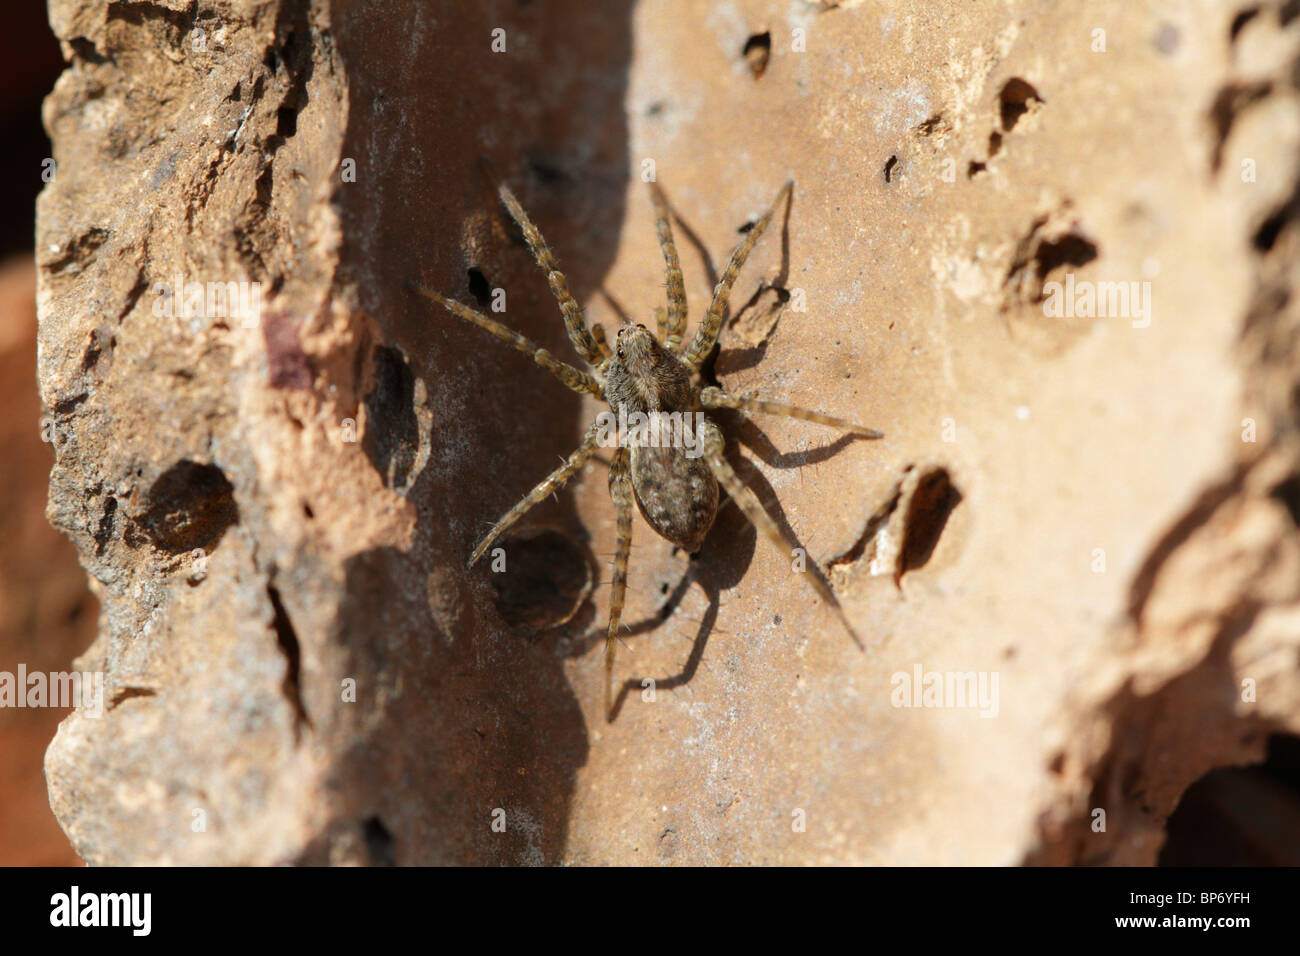 Pardosa amentata, a wolf spider, living  in a disused clay quarry. - Stock Image